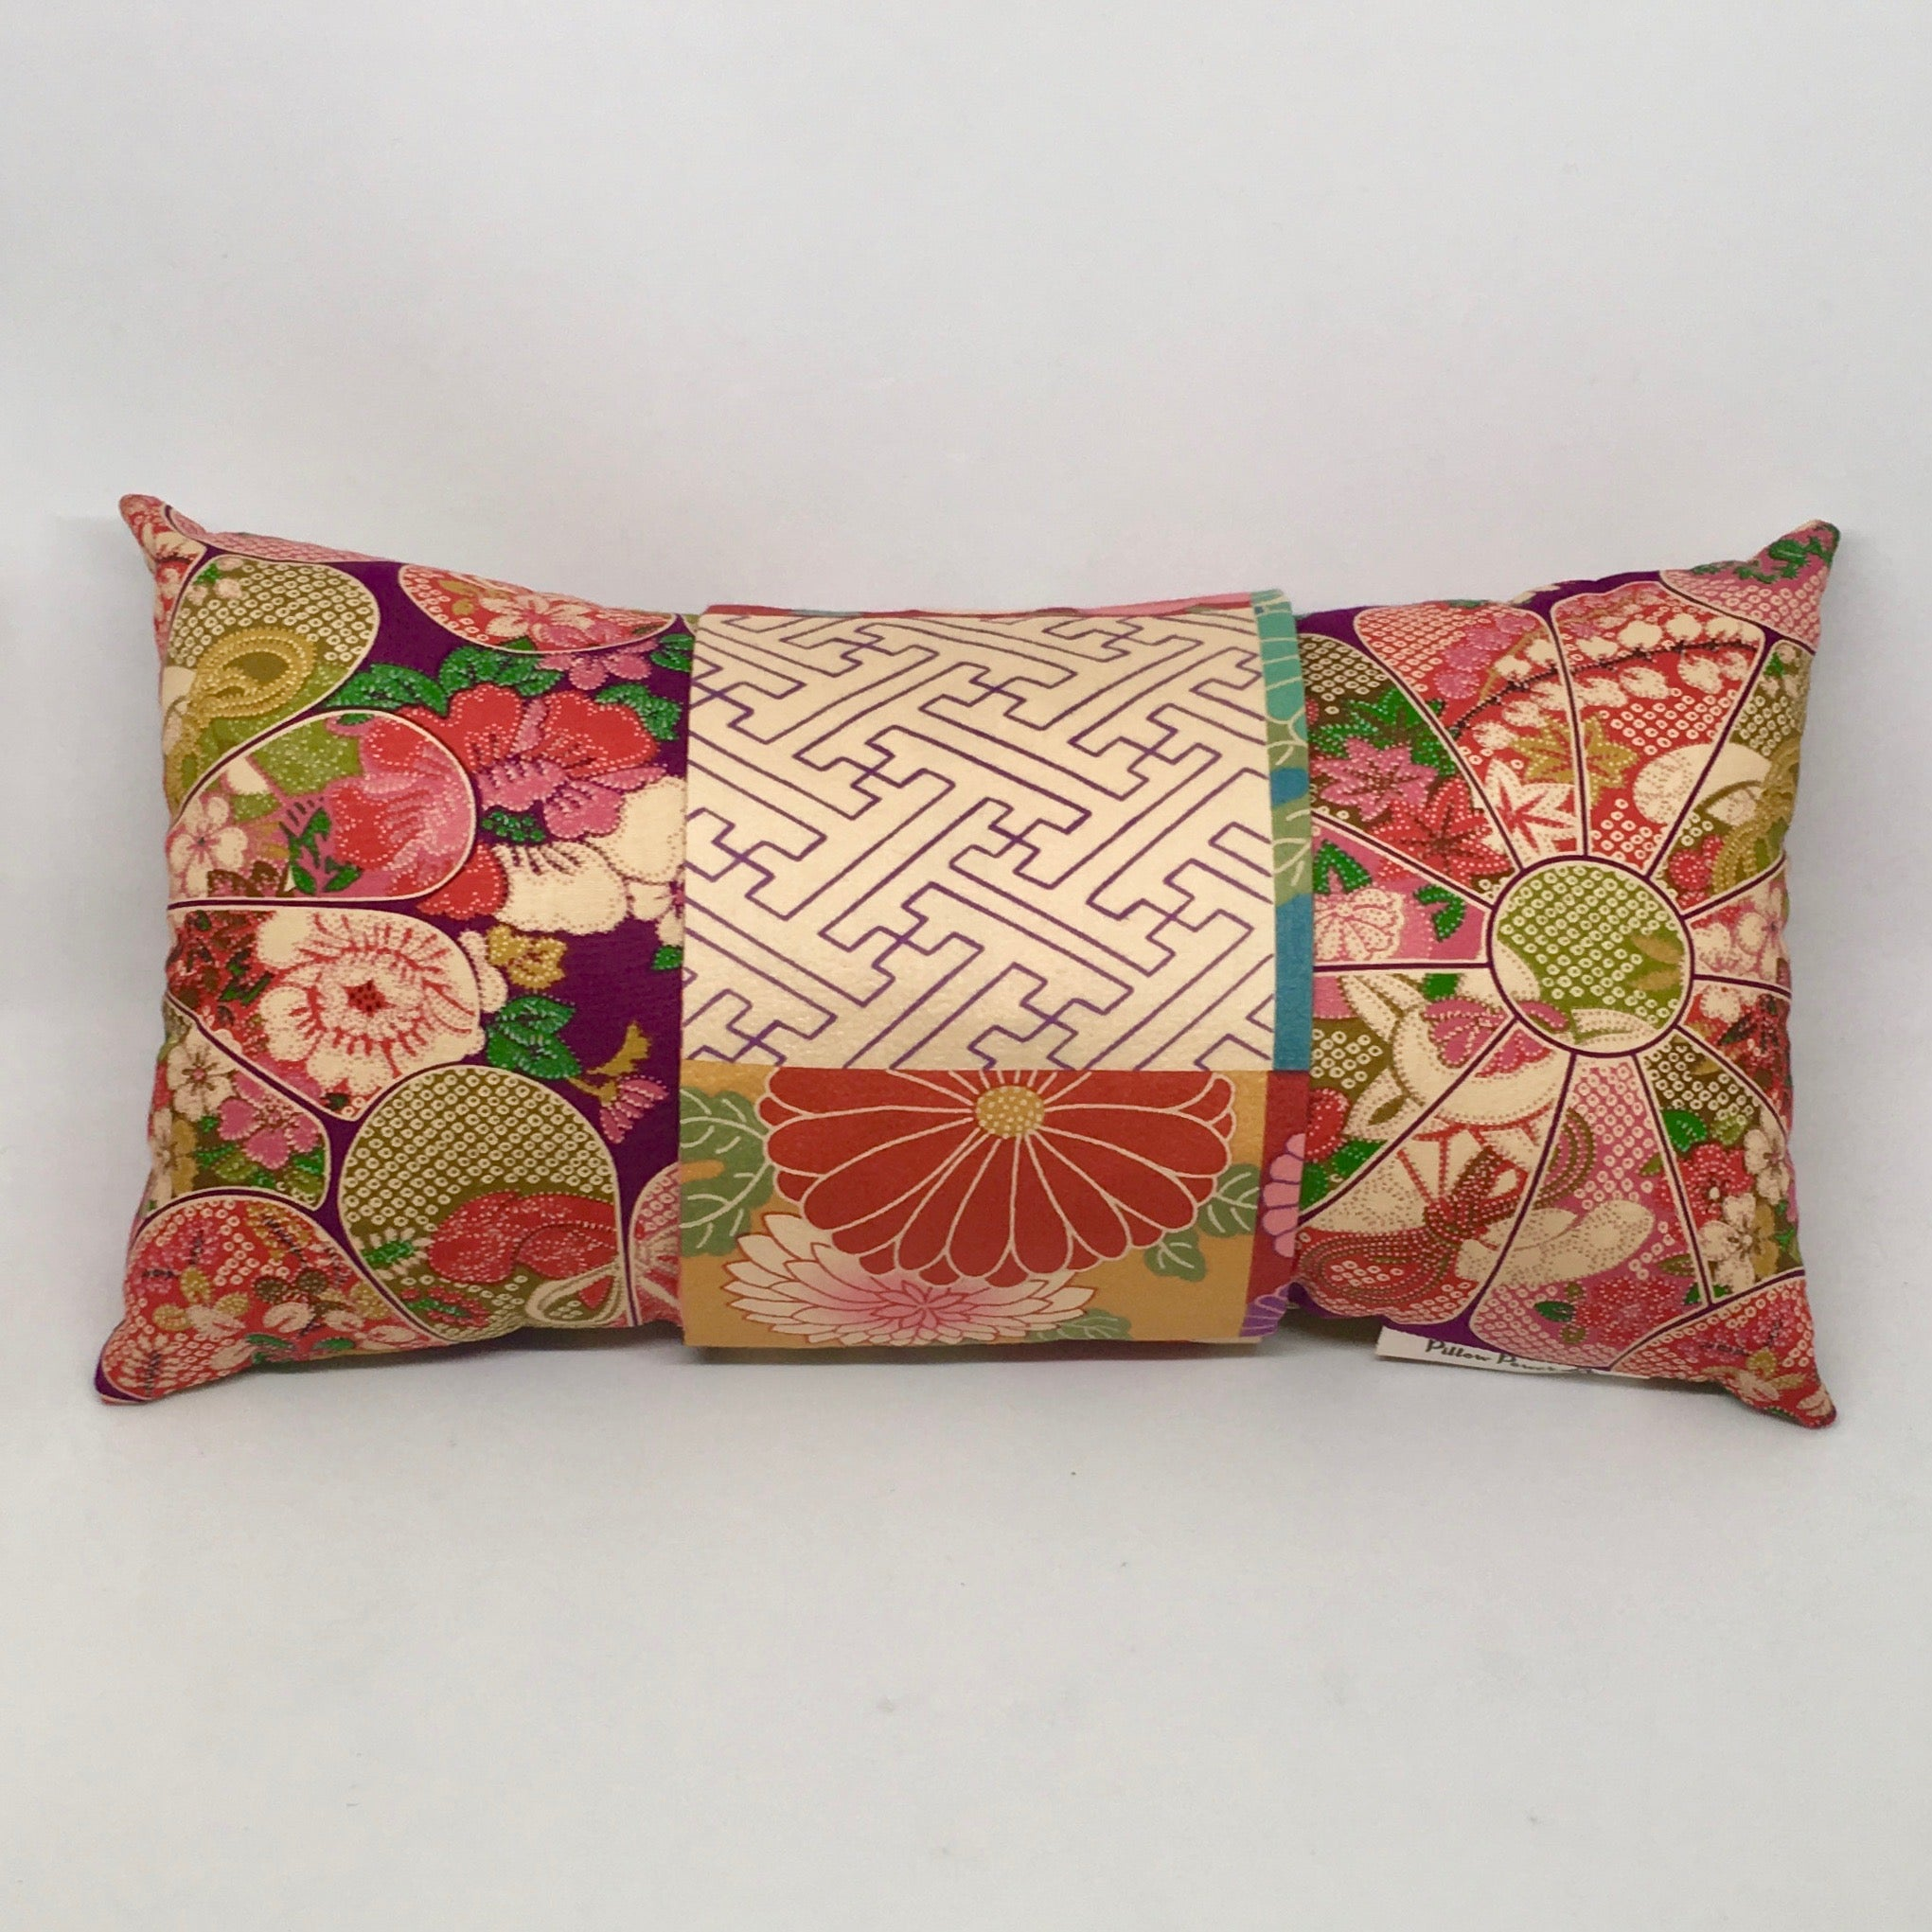 Japanese Cherry Blossoms - Pillow Pocket for your Intentions